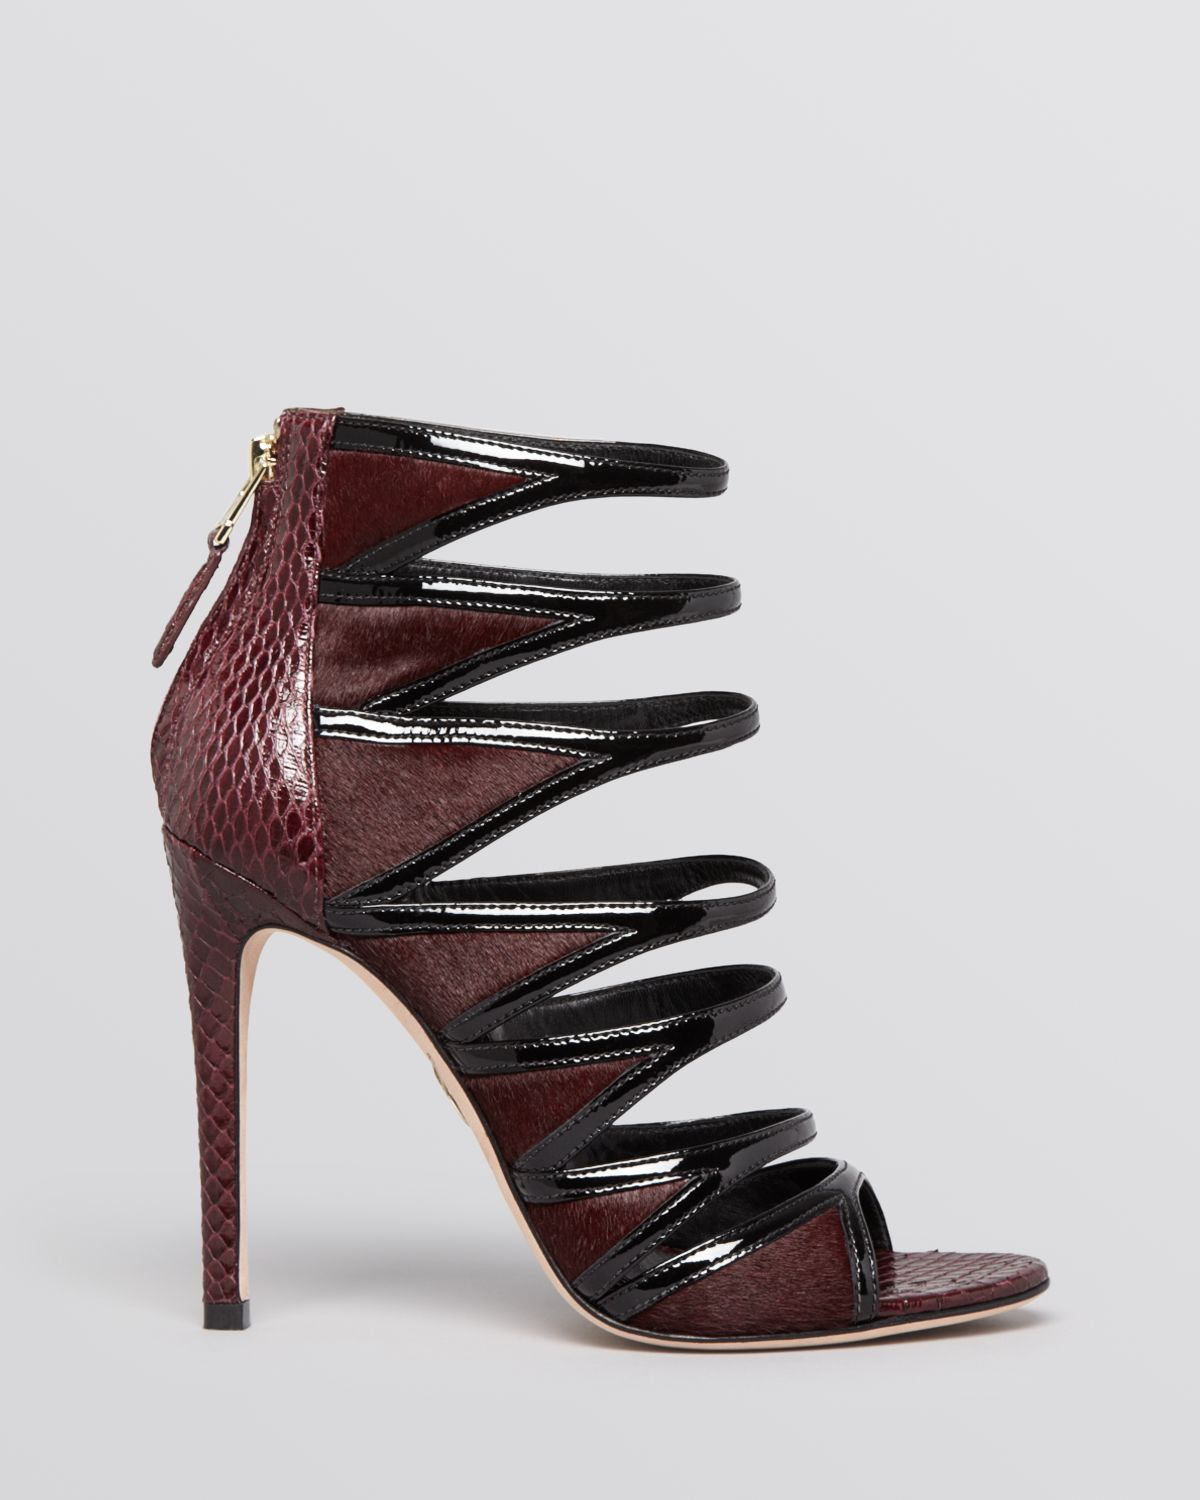 Lyst - B brian atwood Open Toe Strappy Evening Sandals - Lynnden ...